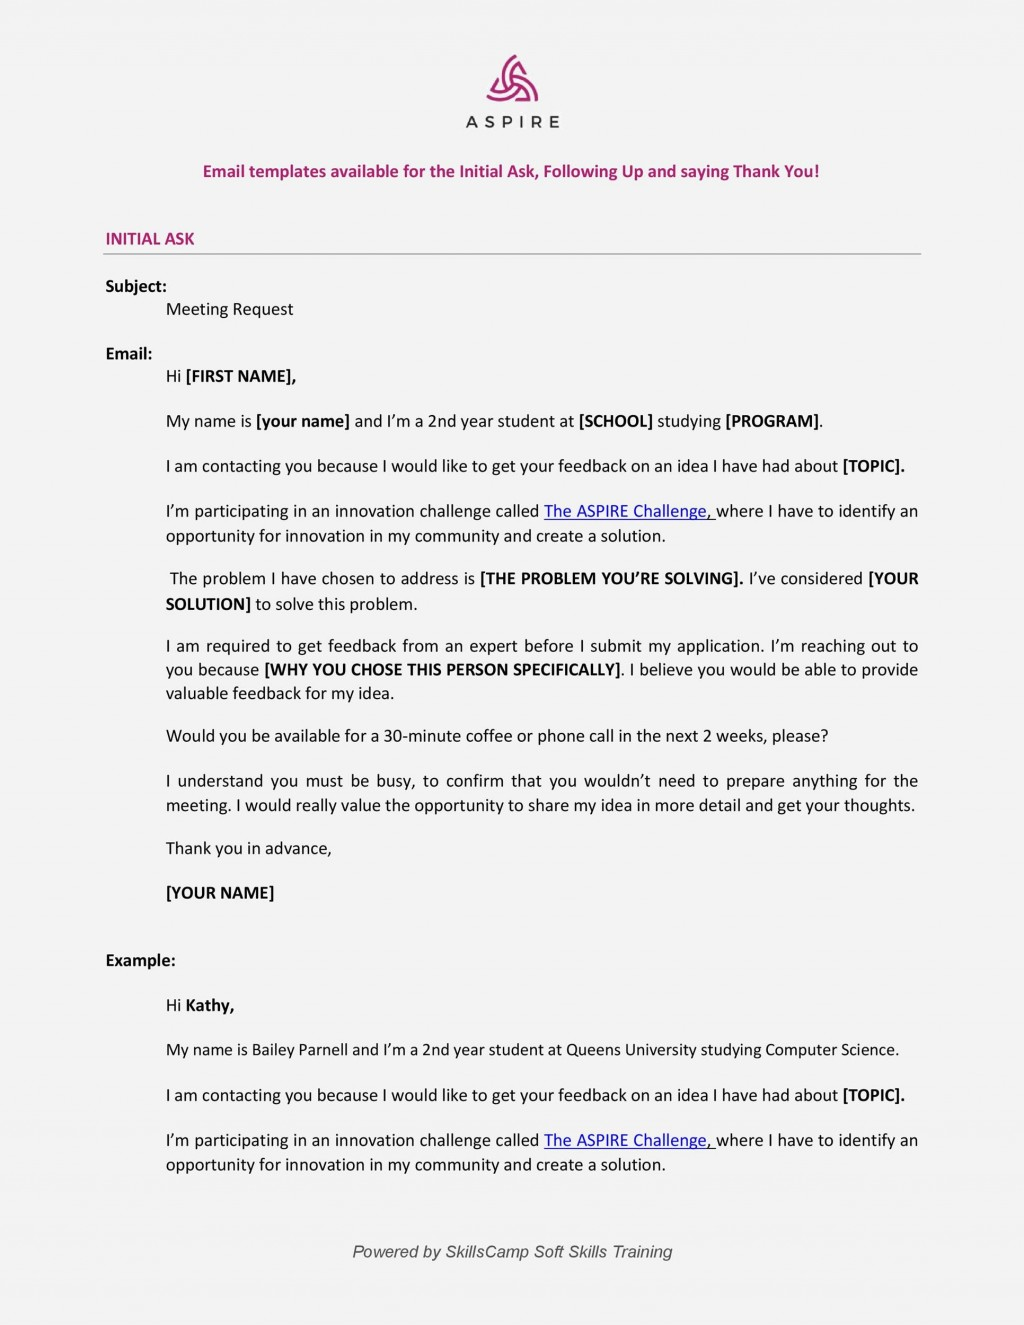 003 Archaicawful Follow Up Email Template Request Highest Quality Large